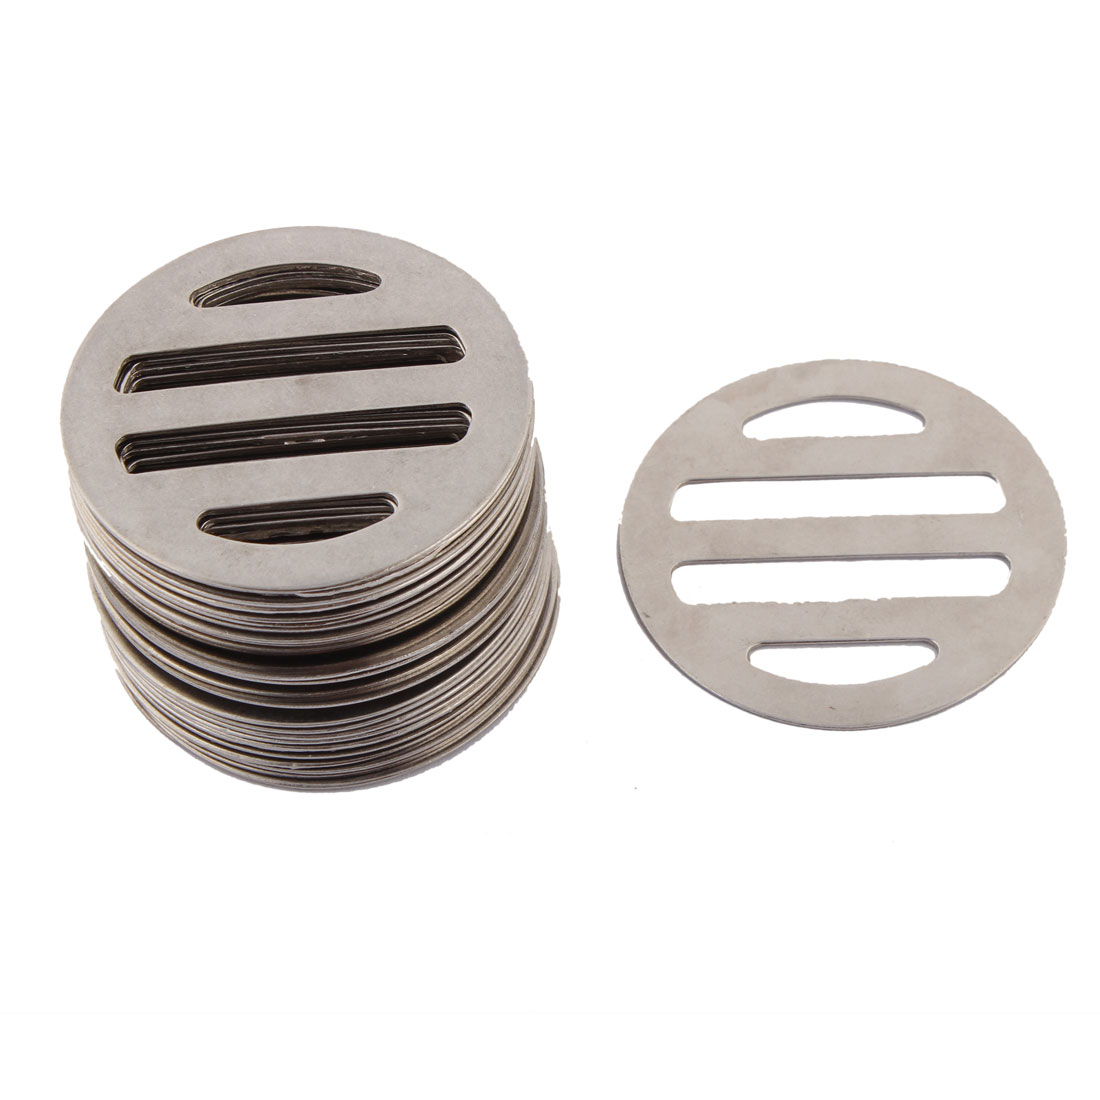 Kitchen Bathroom Metal Round Shaped Floor Drain Drainer Cover Silver Tone 30 Pcs